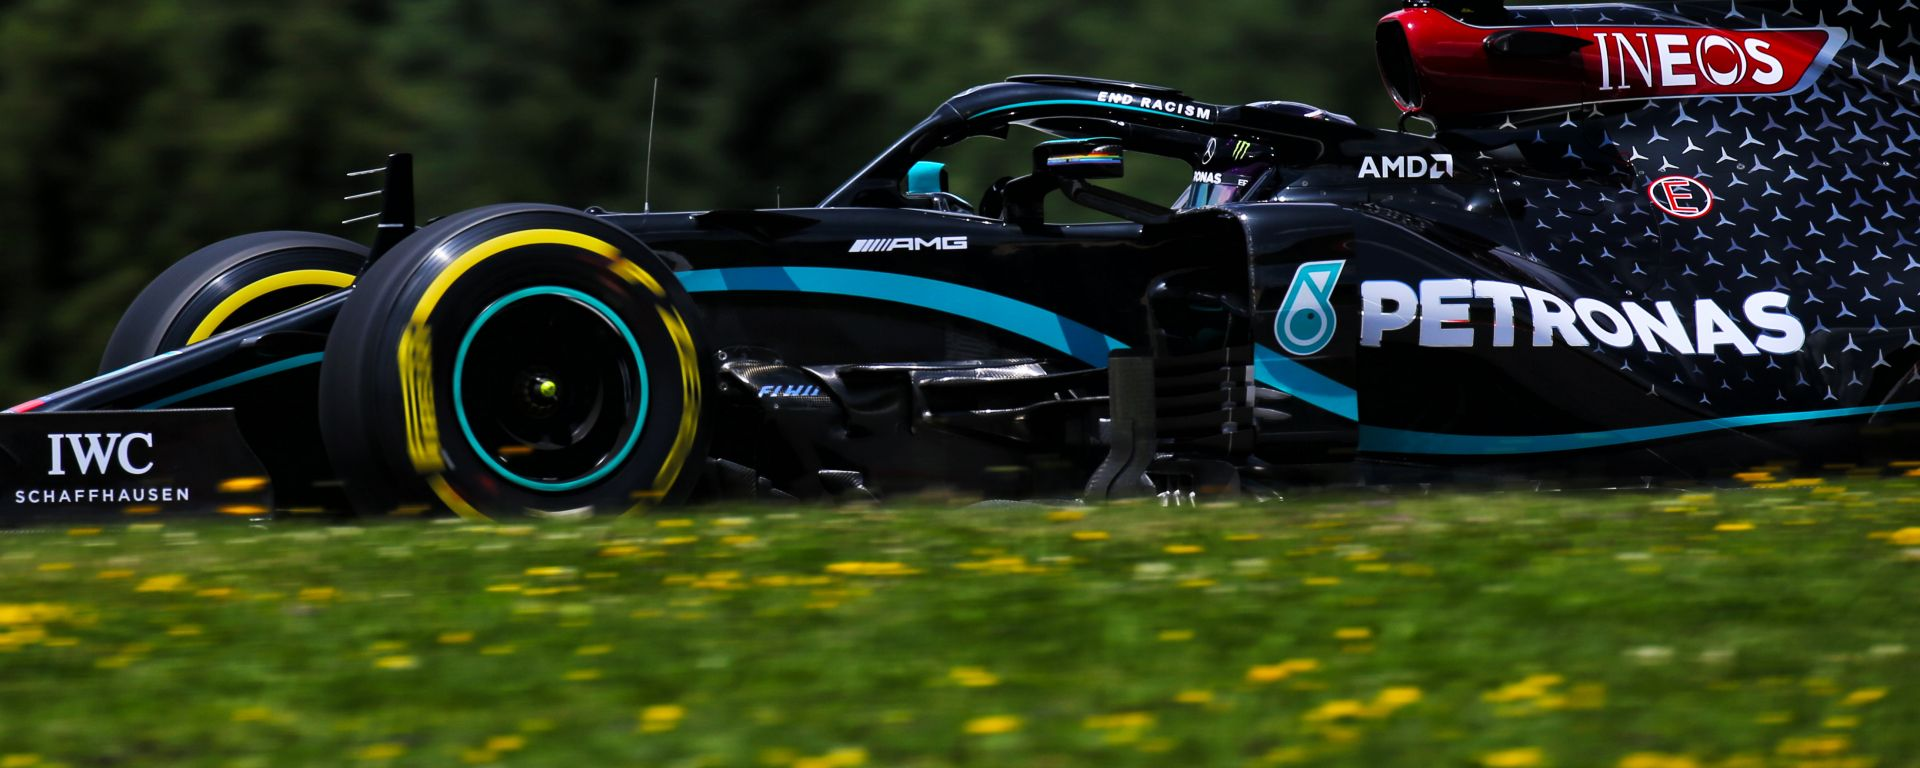 F1 GP Austria 2020, Red Bull Ring: Lewis Hamilton (Mercedes)